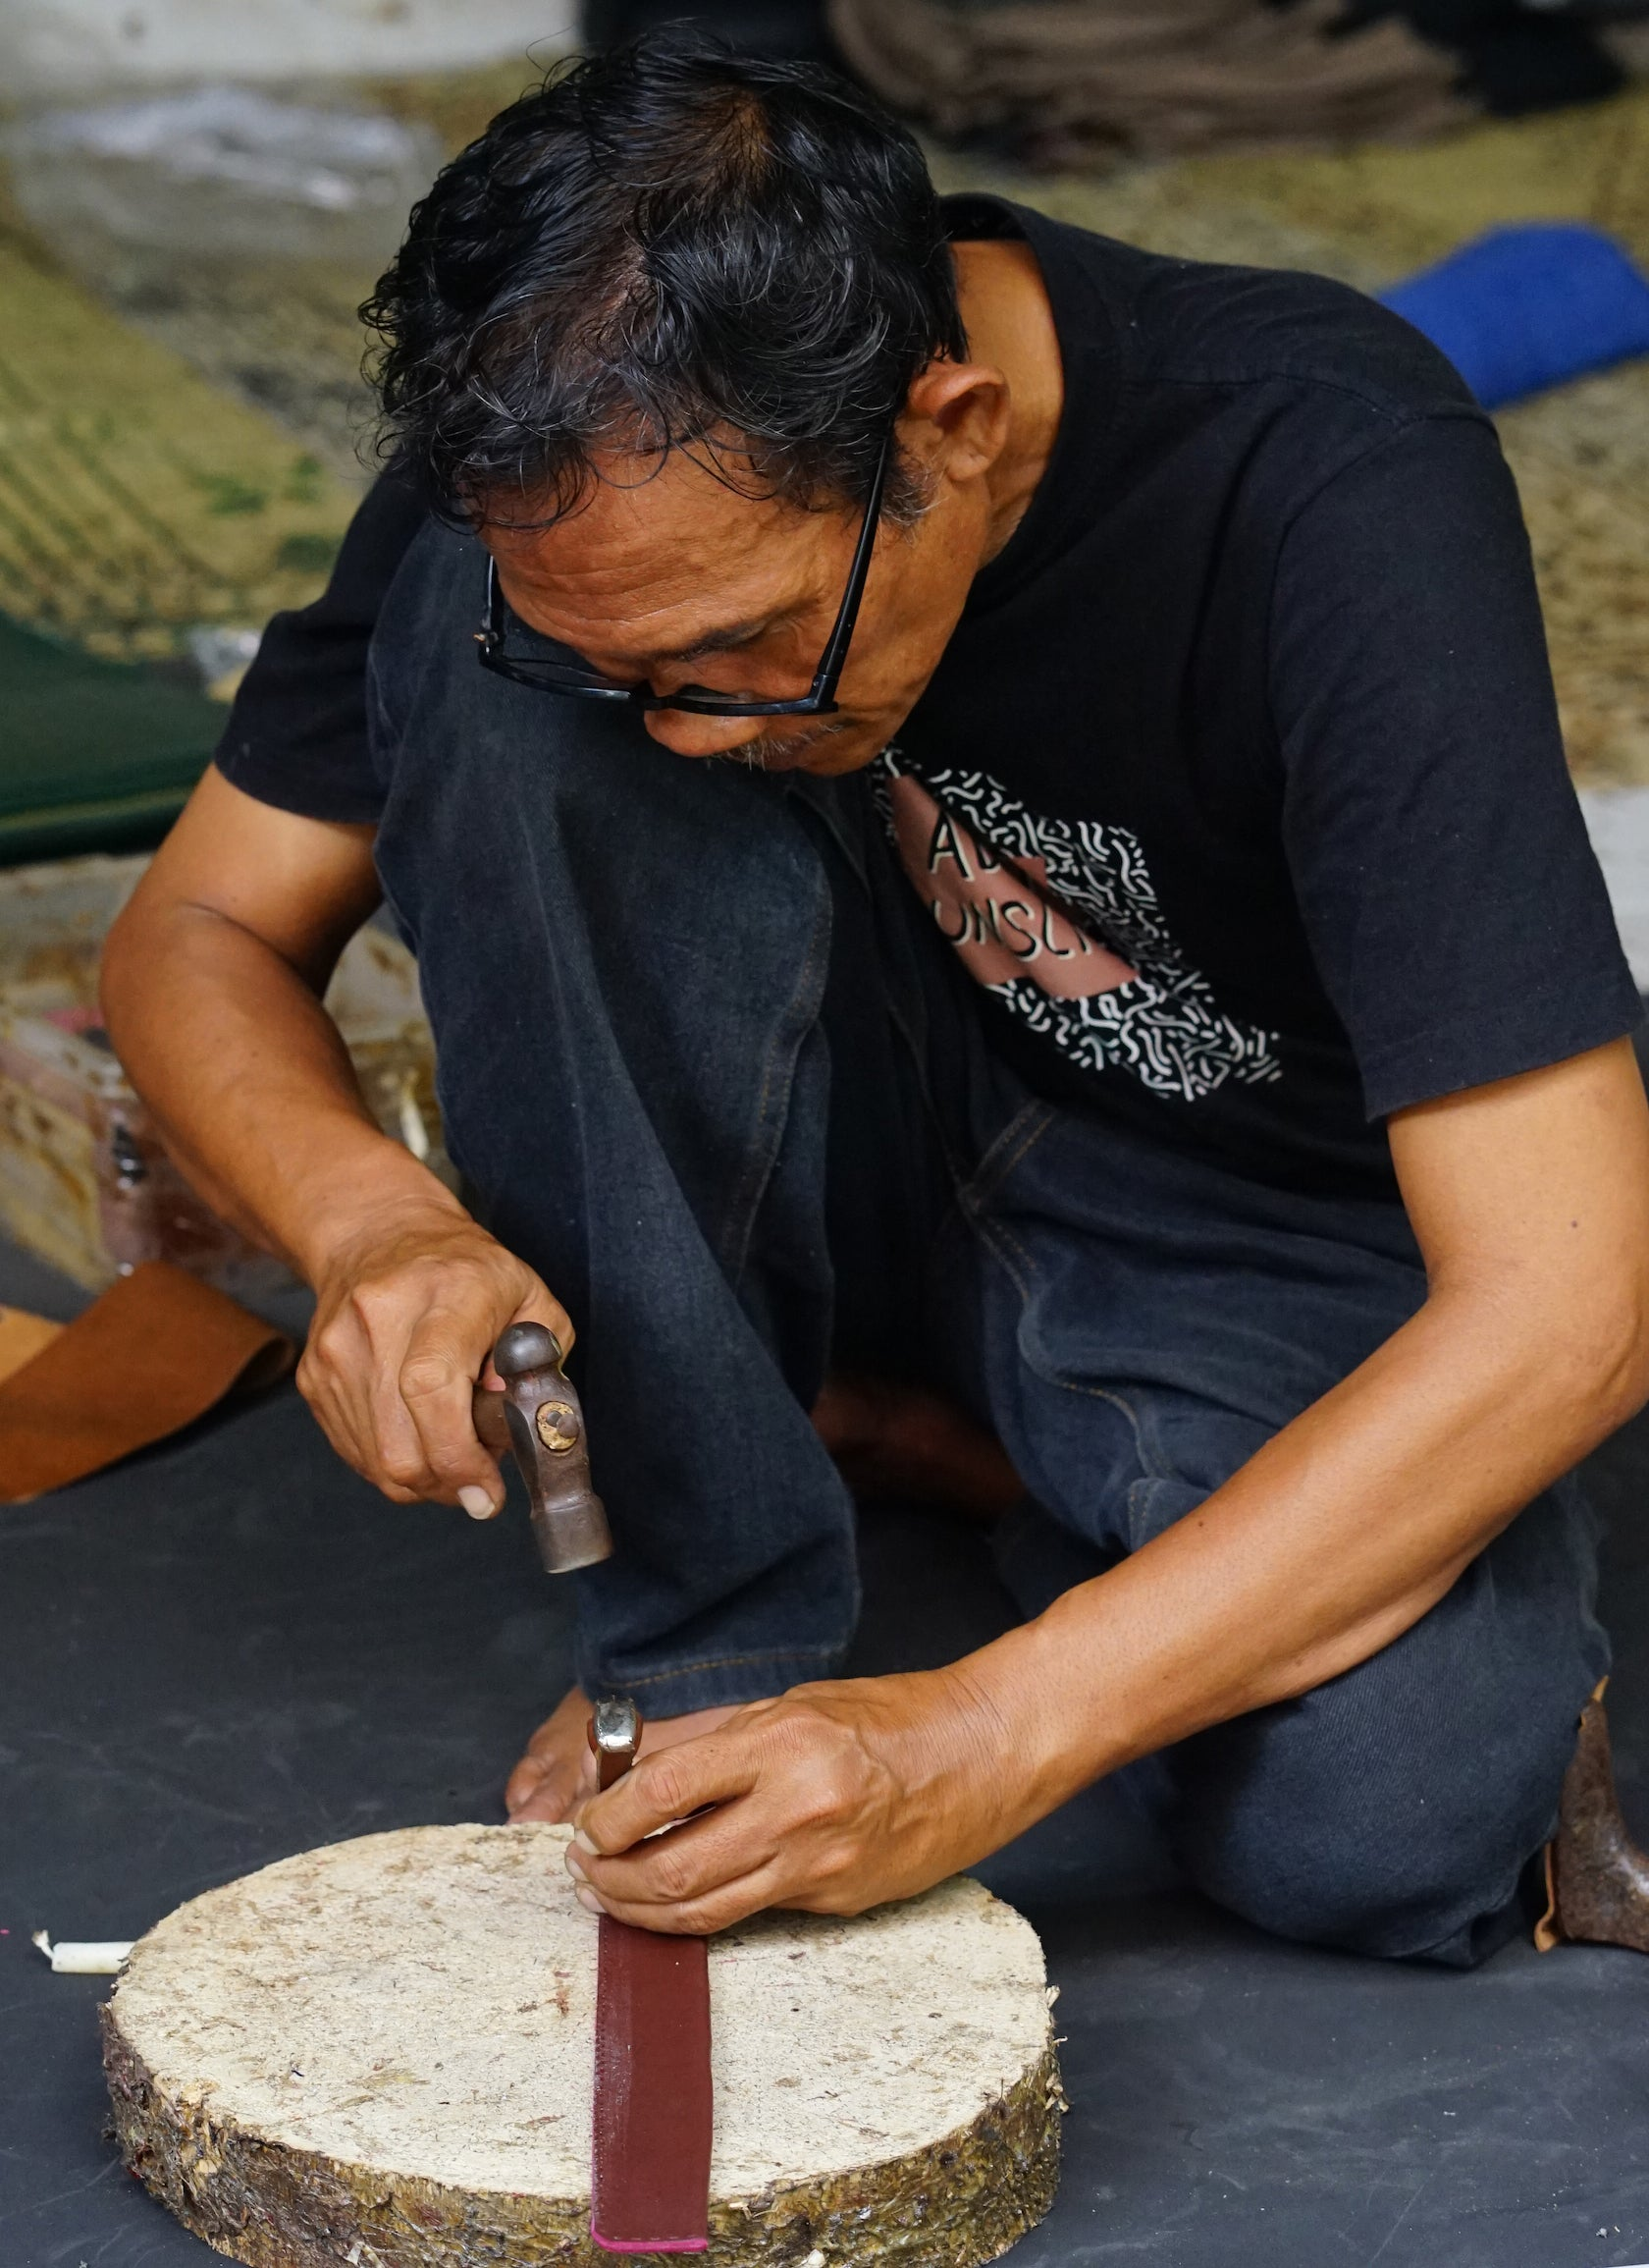 An artisan punches a hole in a leather strip with a hammer and tool.